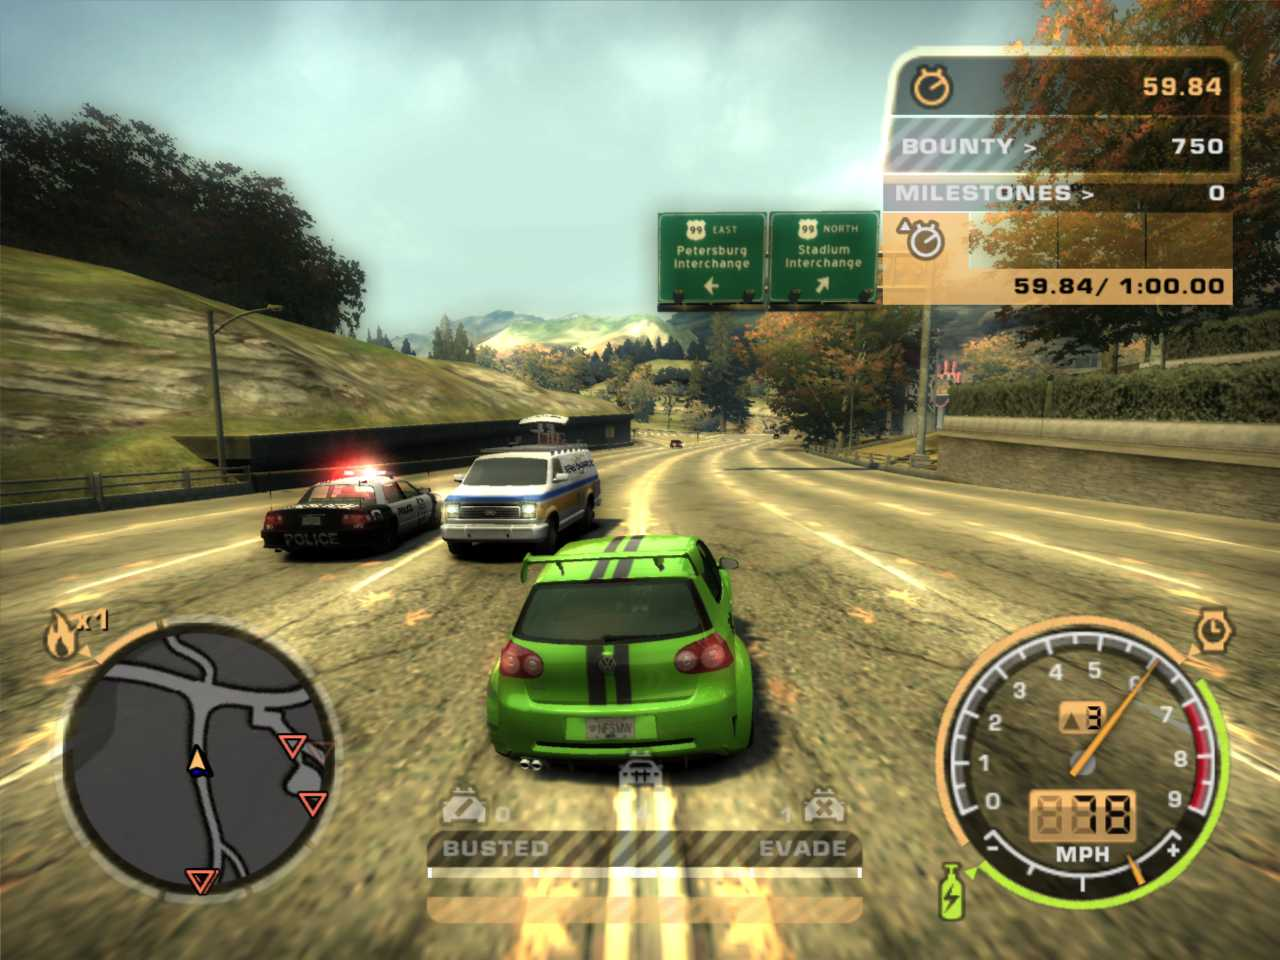 Download free software top 100 pc games 1995.